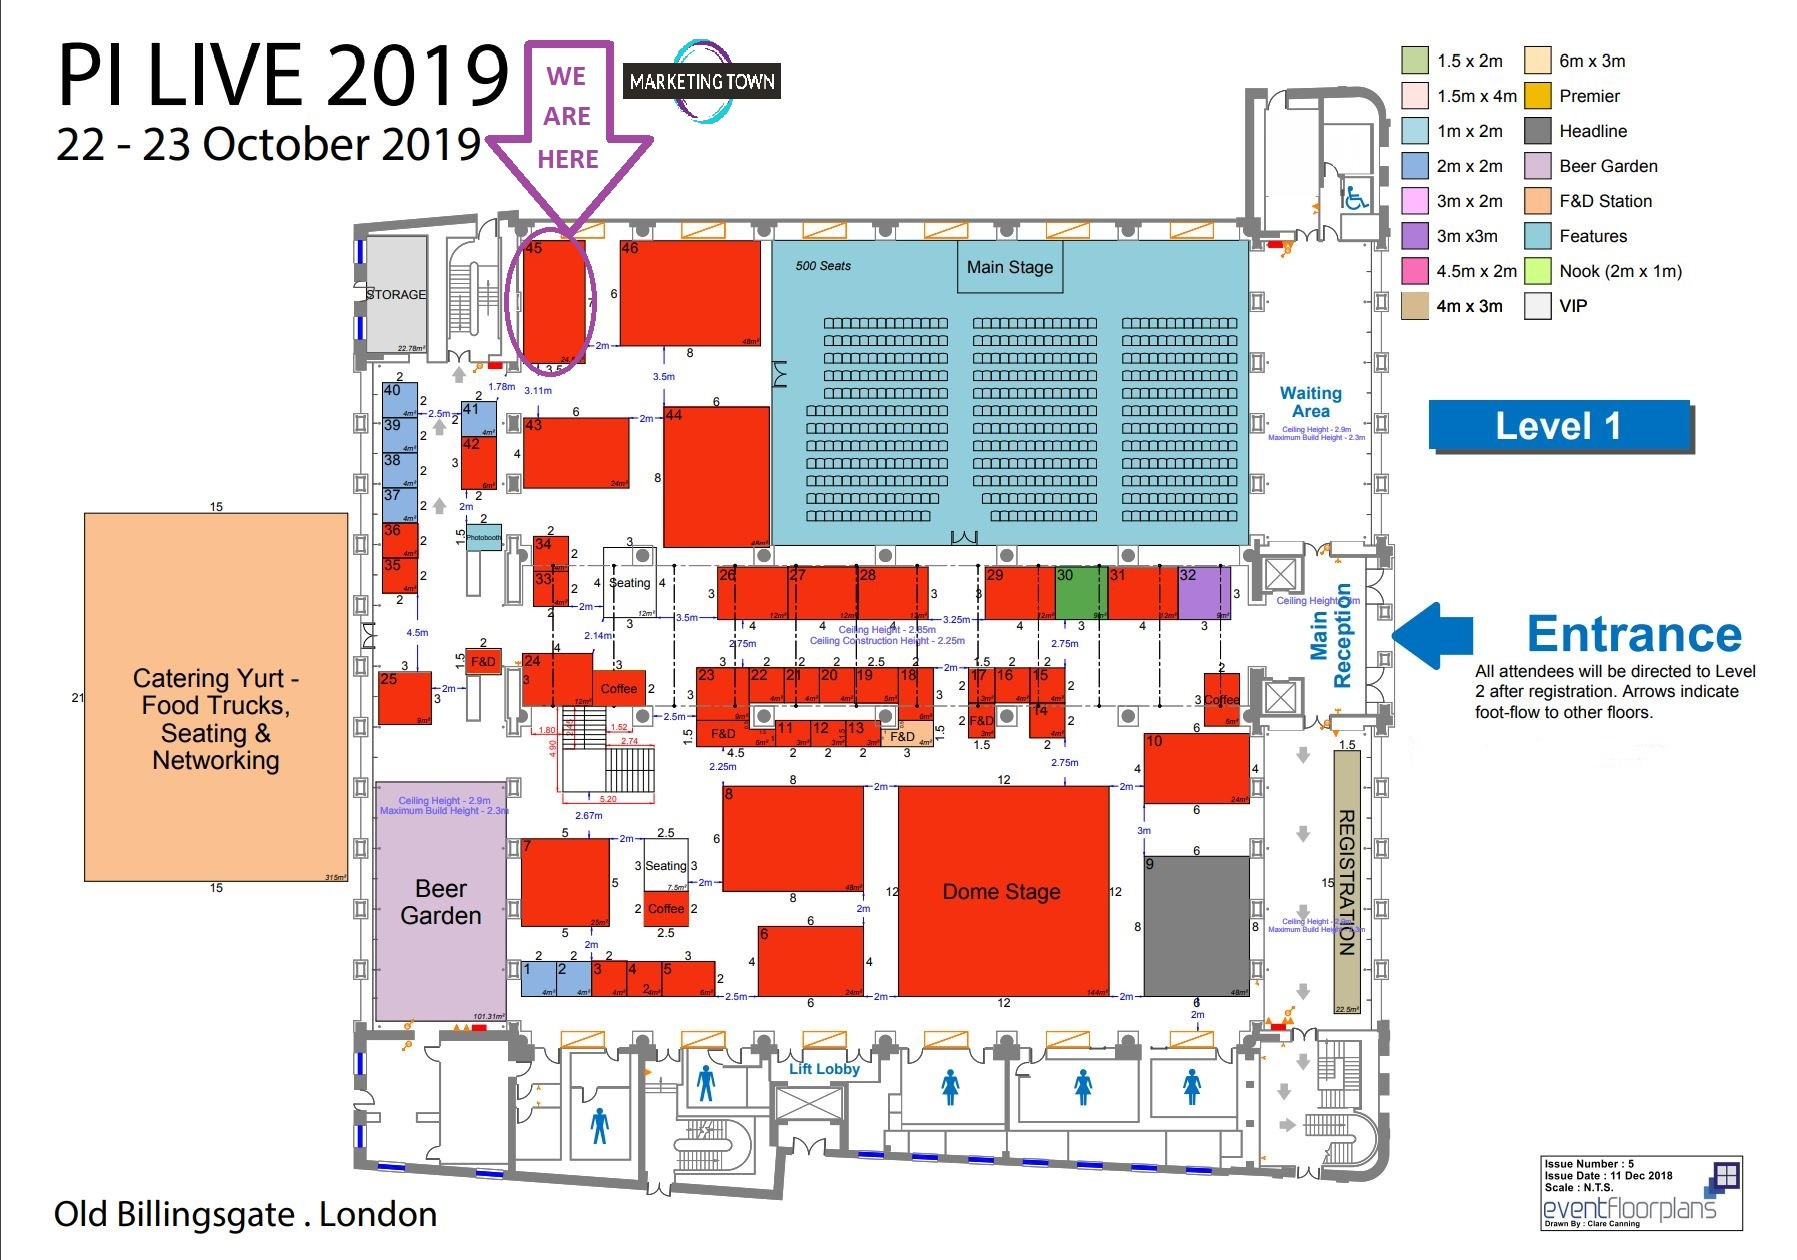 PI Live event floor plan MT stand marked.jpg